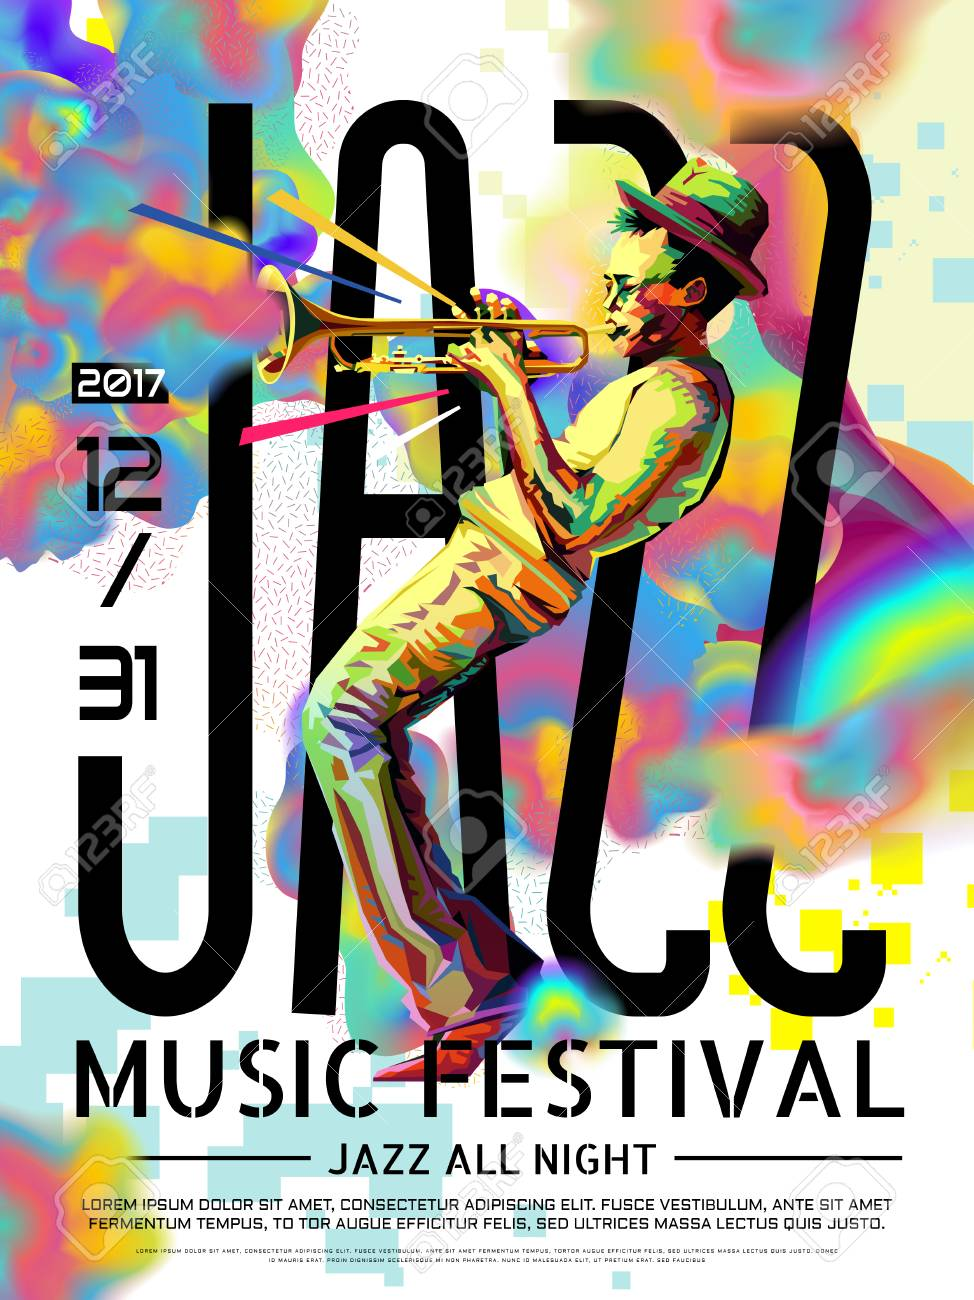 Jazz all night poster, music festival design in WPAP style, pop art portrait for trumpet performance - 92101758